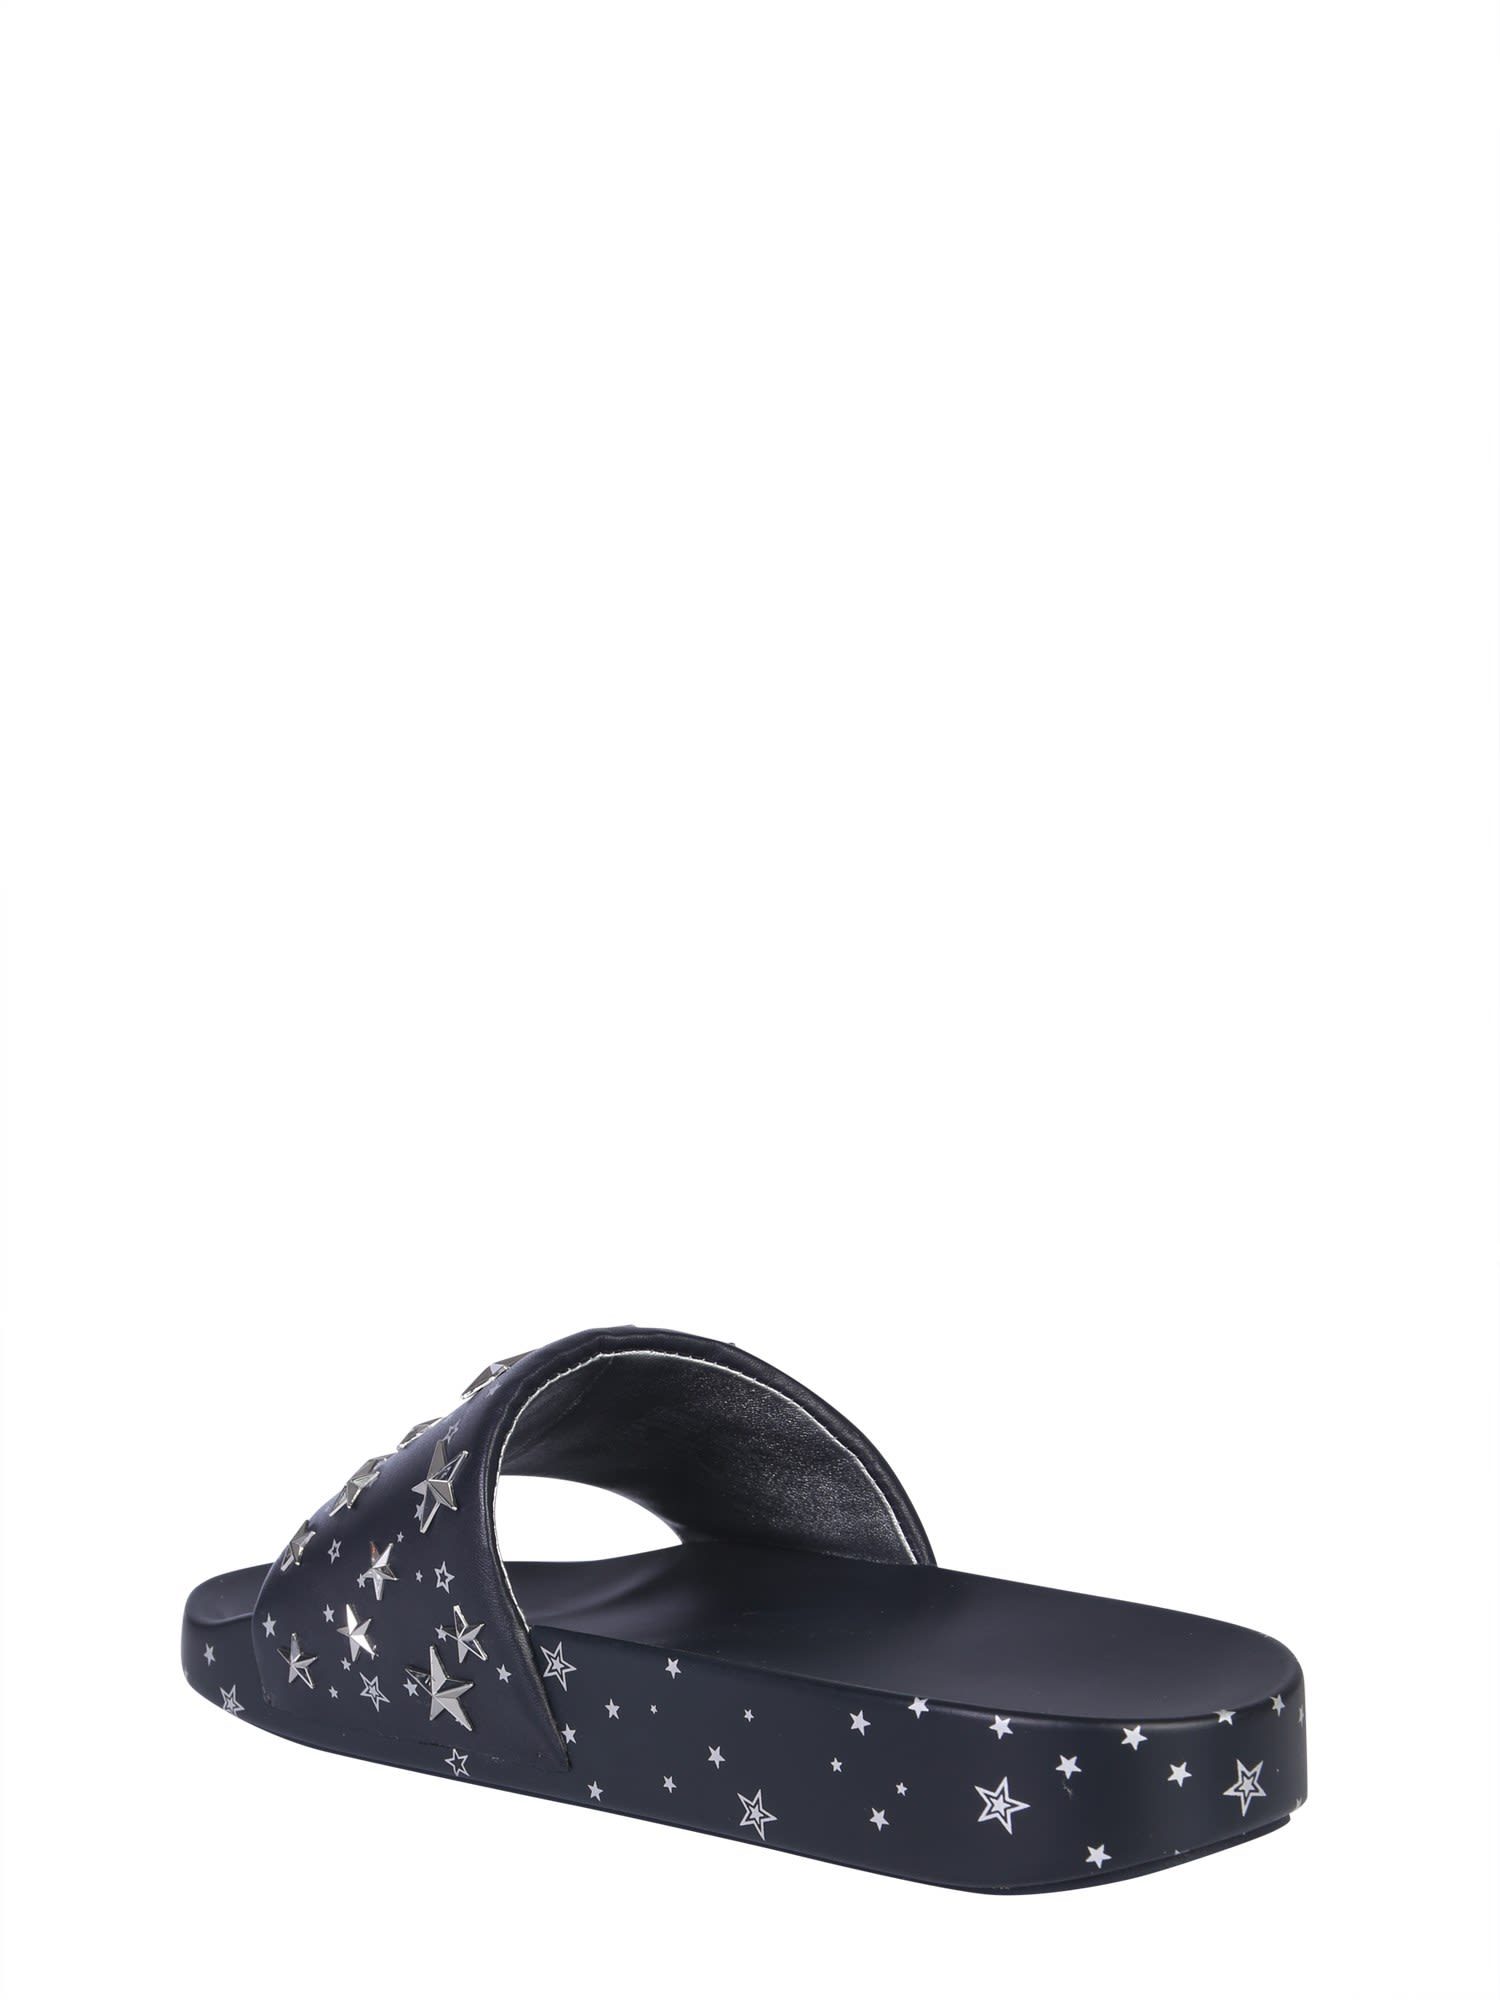 040dc3737 Tory Burch Tory Burch Slide Sandals With Stars - Blue - 10789792 ...